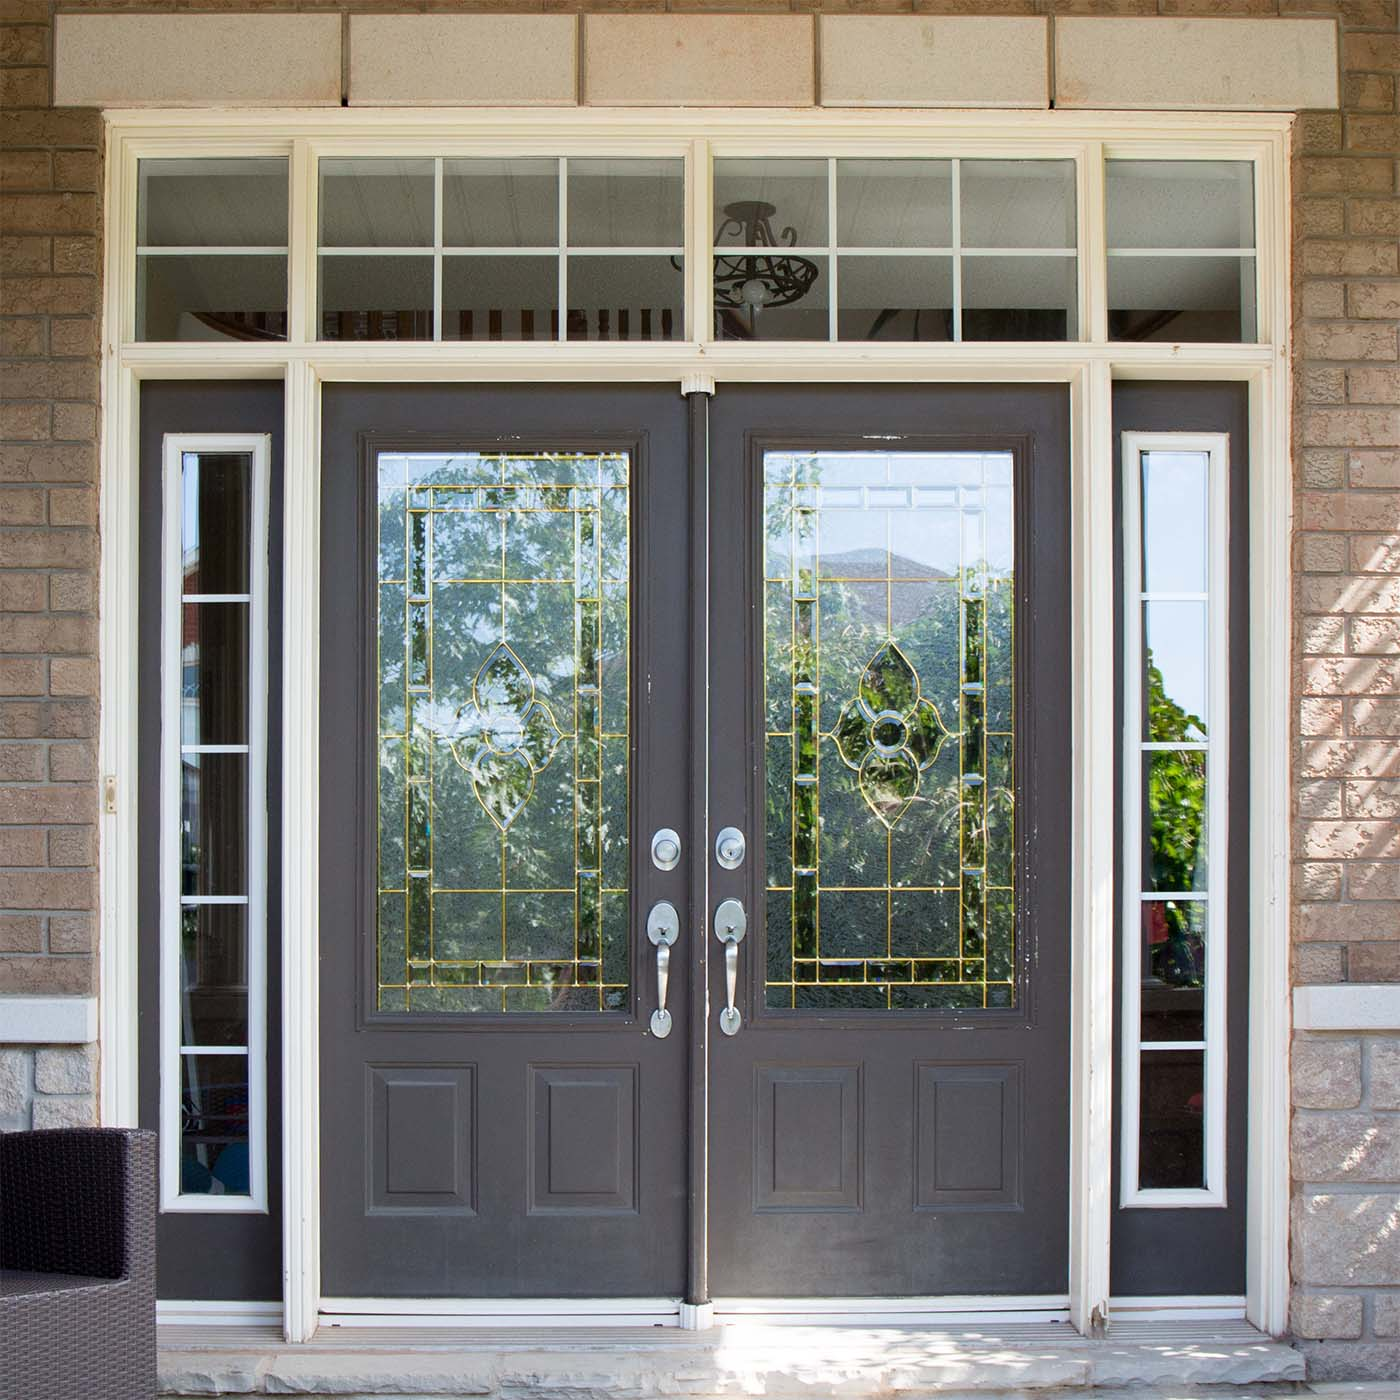 Dark gray french front door with glass stransoms and beige brick house